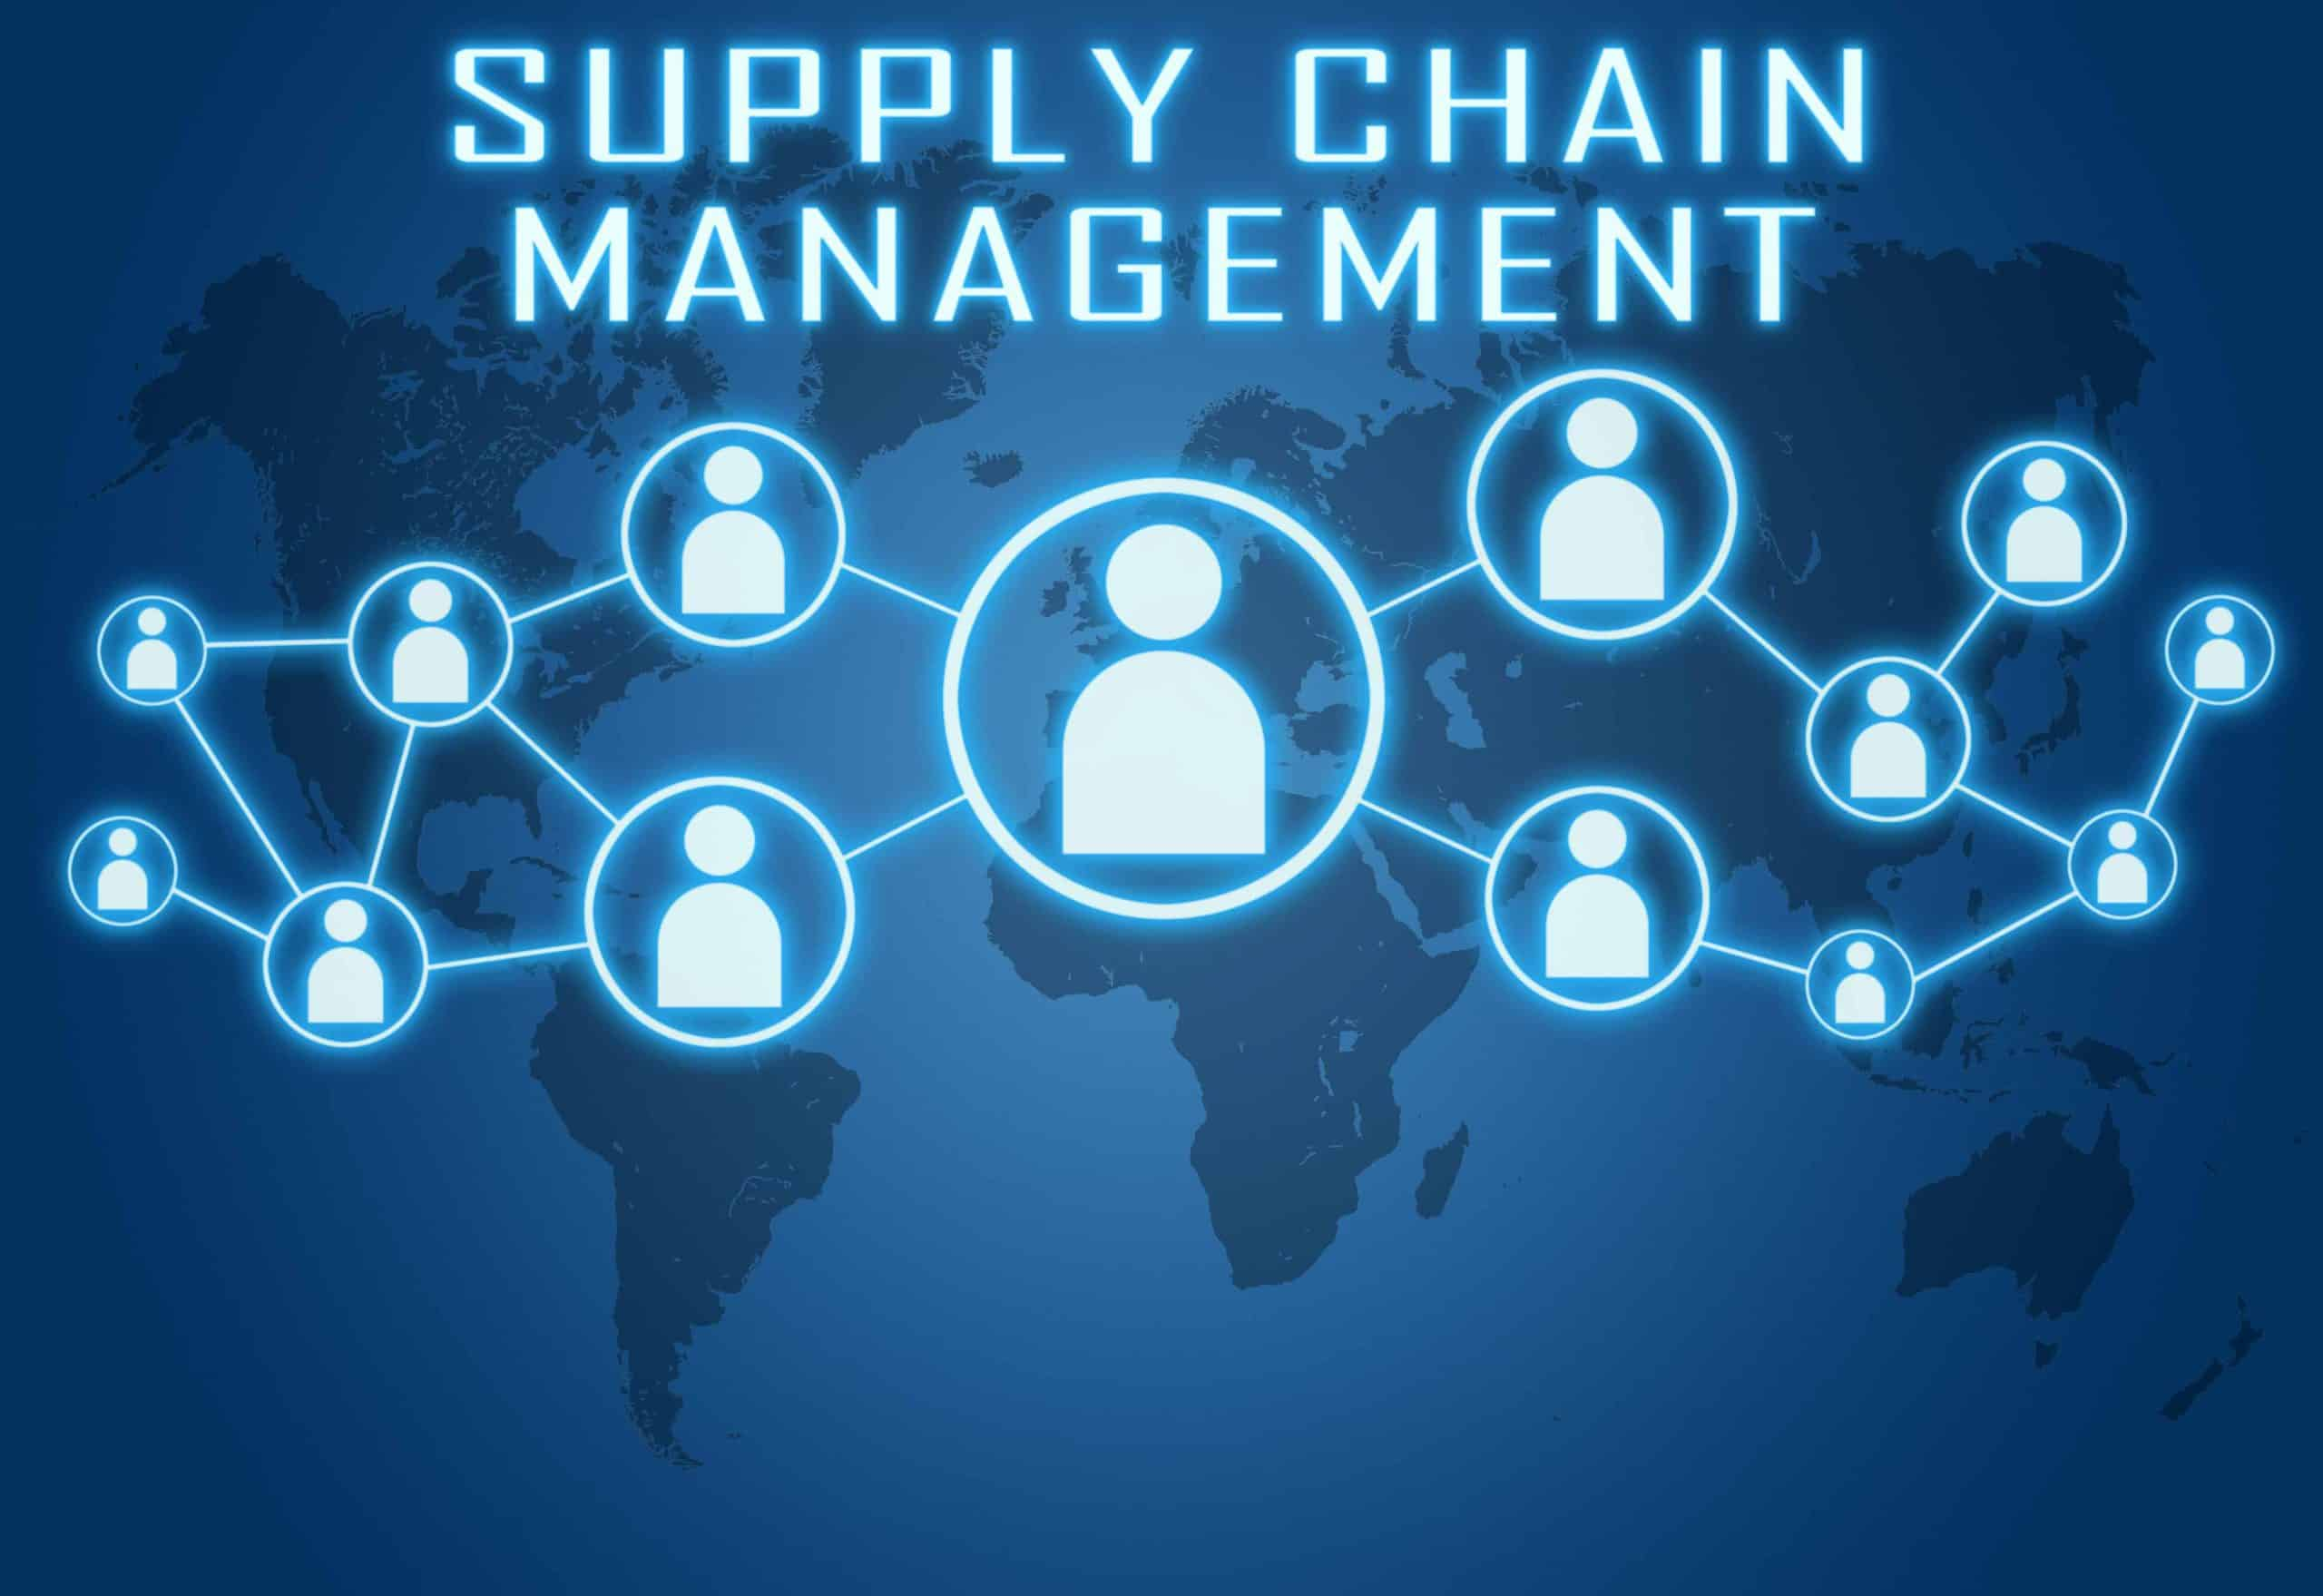 Supplier Onboarding & Qualification - Supplier Management's value all starts with Supplier Onboarding & Qualification